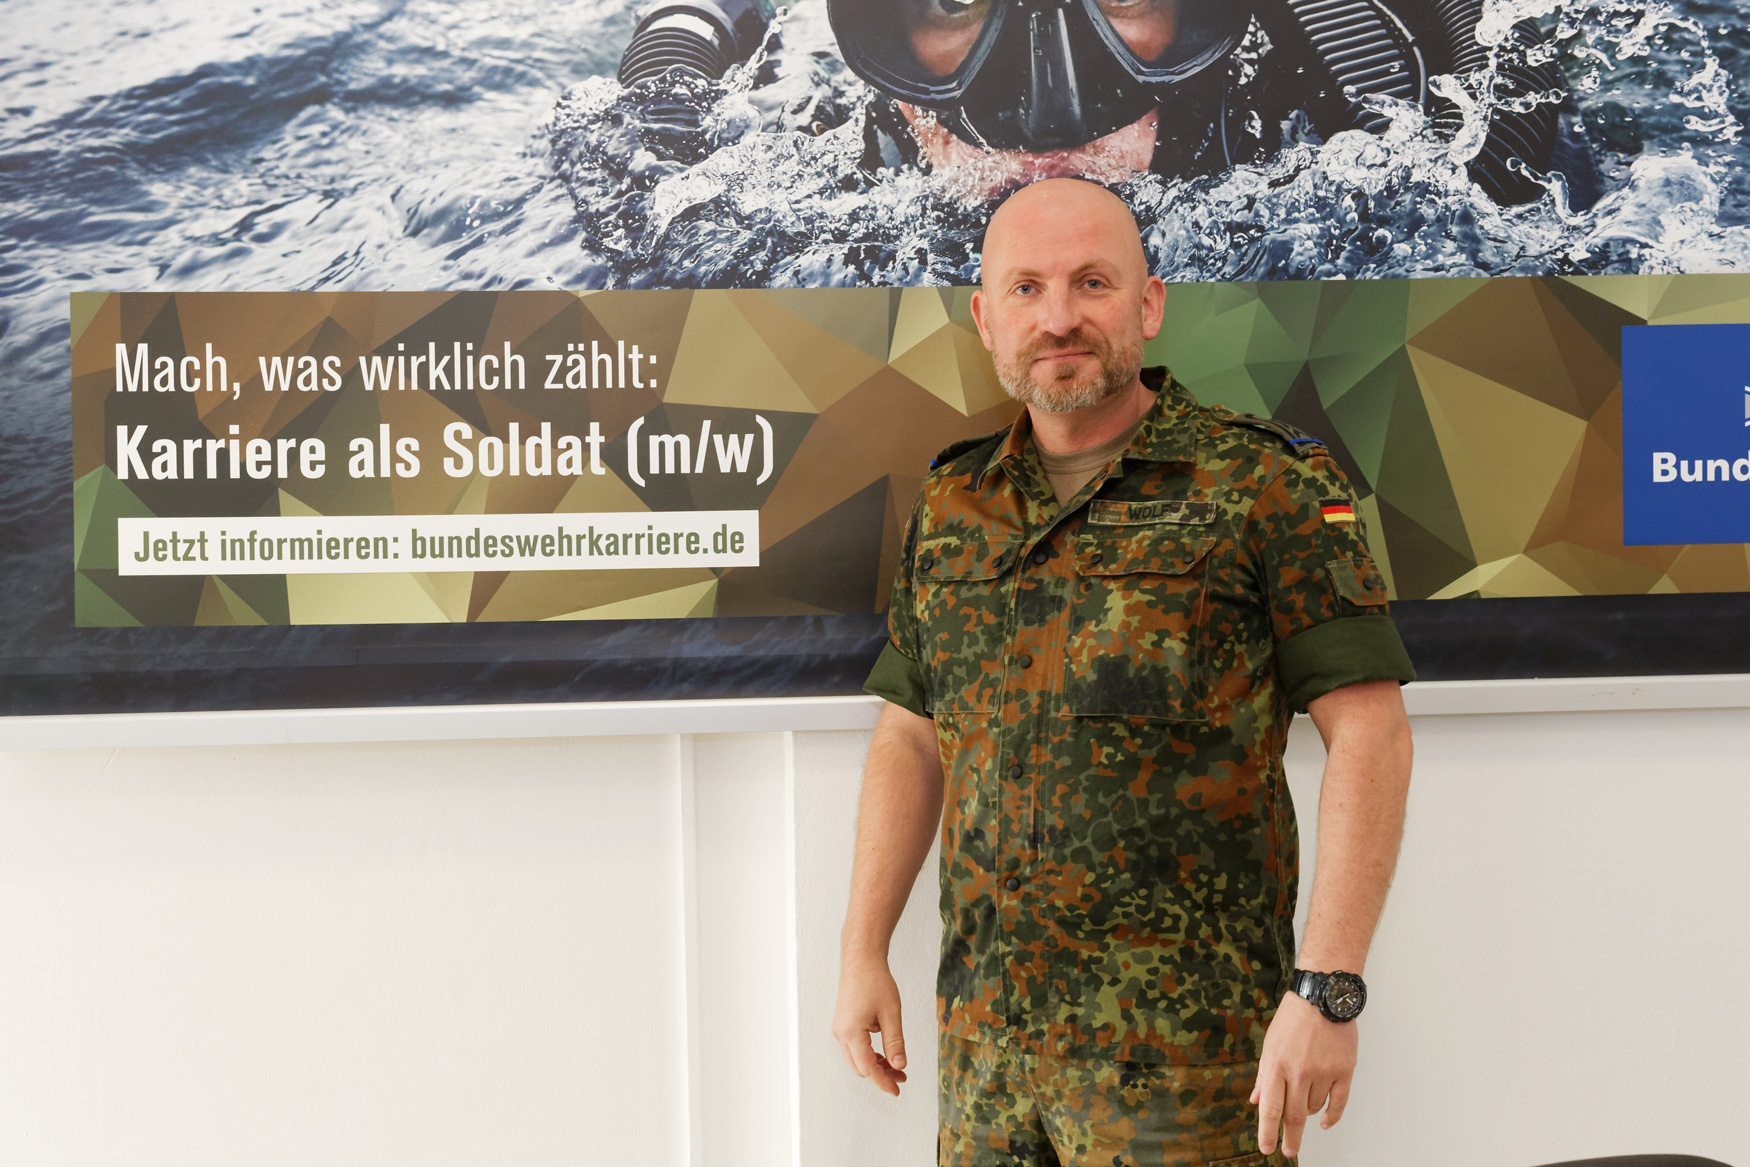 interview schwul in der bundeswehr blu hinnerk gab rik leo. Black Bedroom Furniture Sets. Home Design Ideas